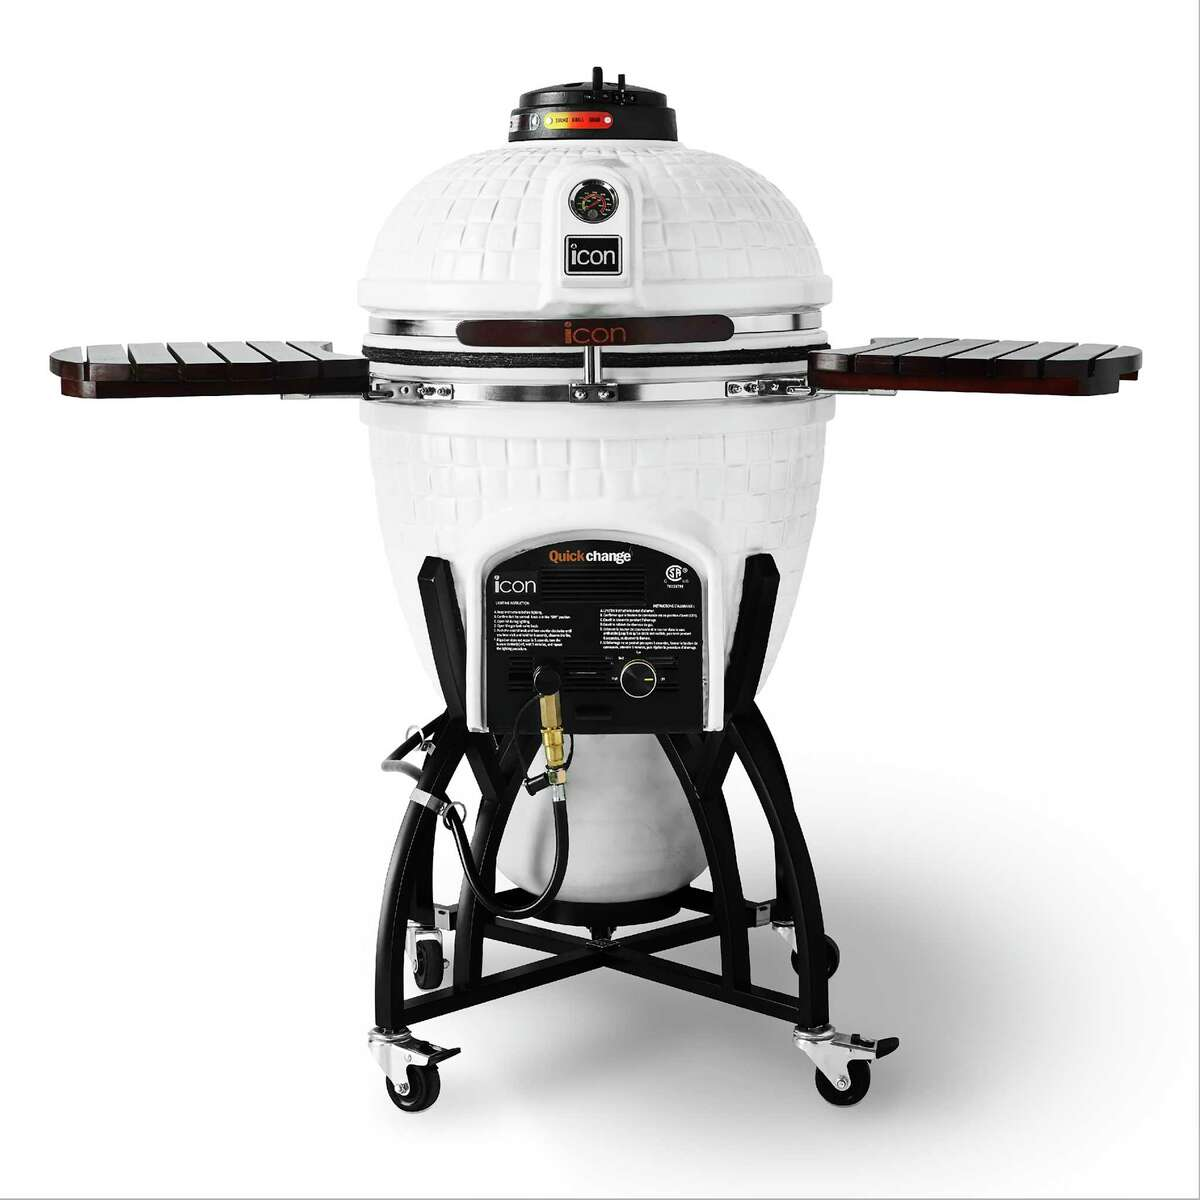 """This photo provided by Williams Sonoma shows the Icon Hybrid Kamado Grill. Many serious grill enthusiasts opt for the kamado style grill a€?"""" the word means 'stove' in Japanese a€?"""" that has a distinctive oval shape. With top and bottom vents, these grills have thick ceramic heat-trapping walls that make them heat up quickly, and work much like convection ovens. This hybrid kamado grill, available only at Williams Sonoma, takes either charcoal or gas. Its white exterior makes it look a little like R2D2. (Williams Sonoma via AP)"""